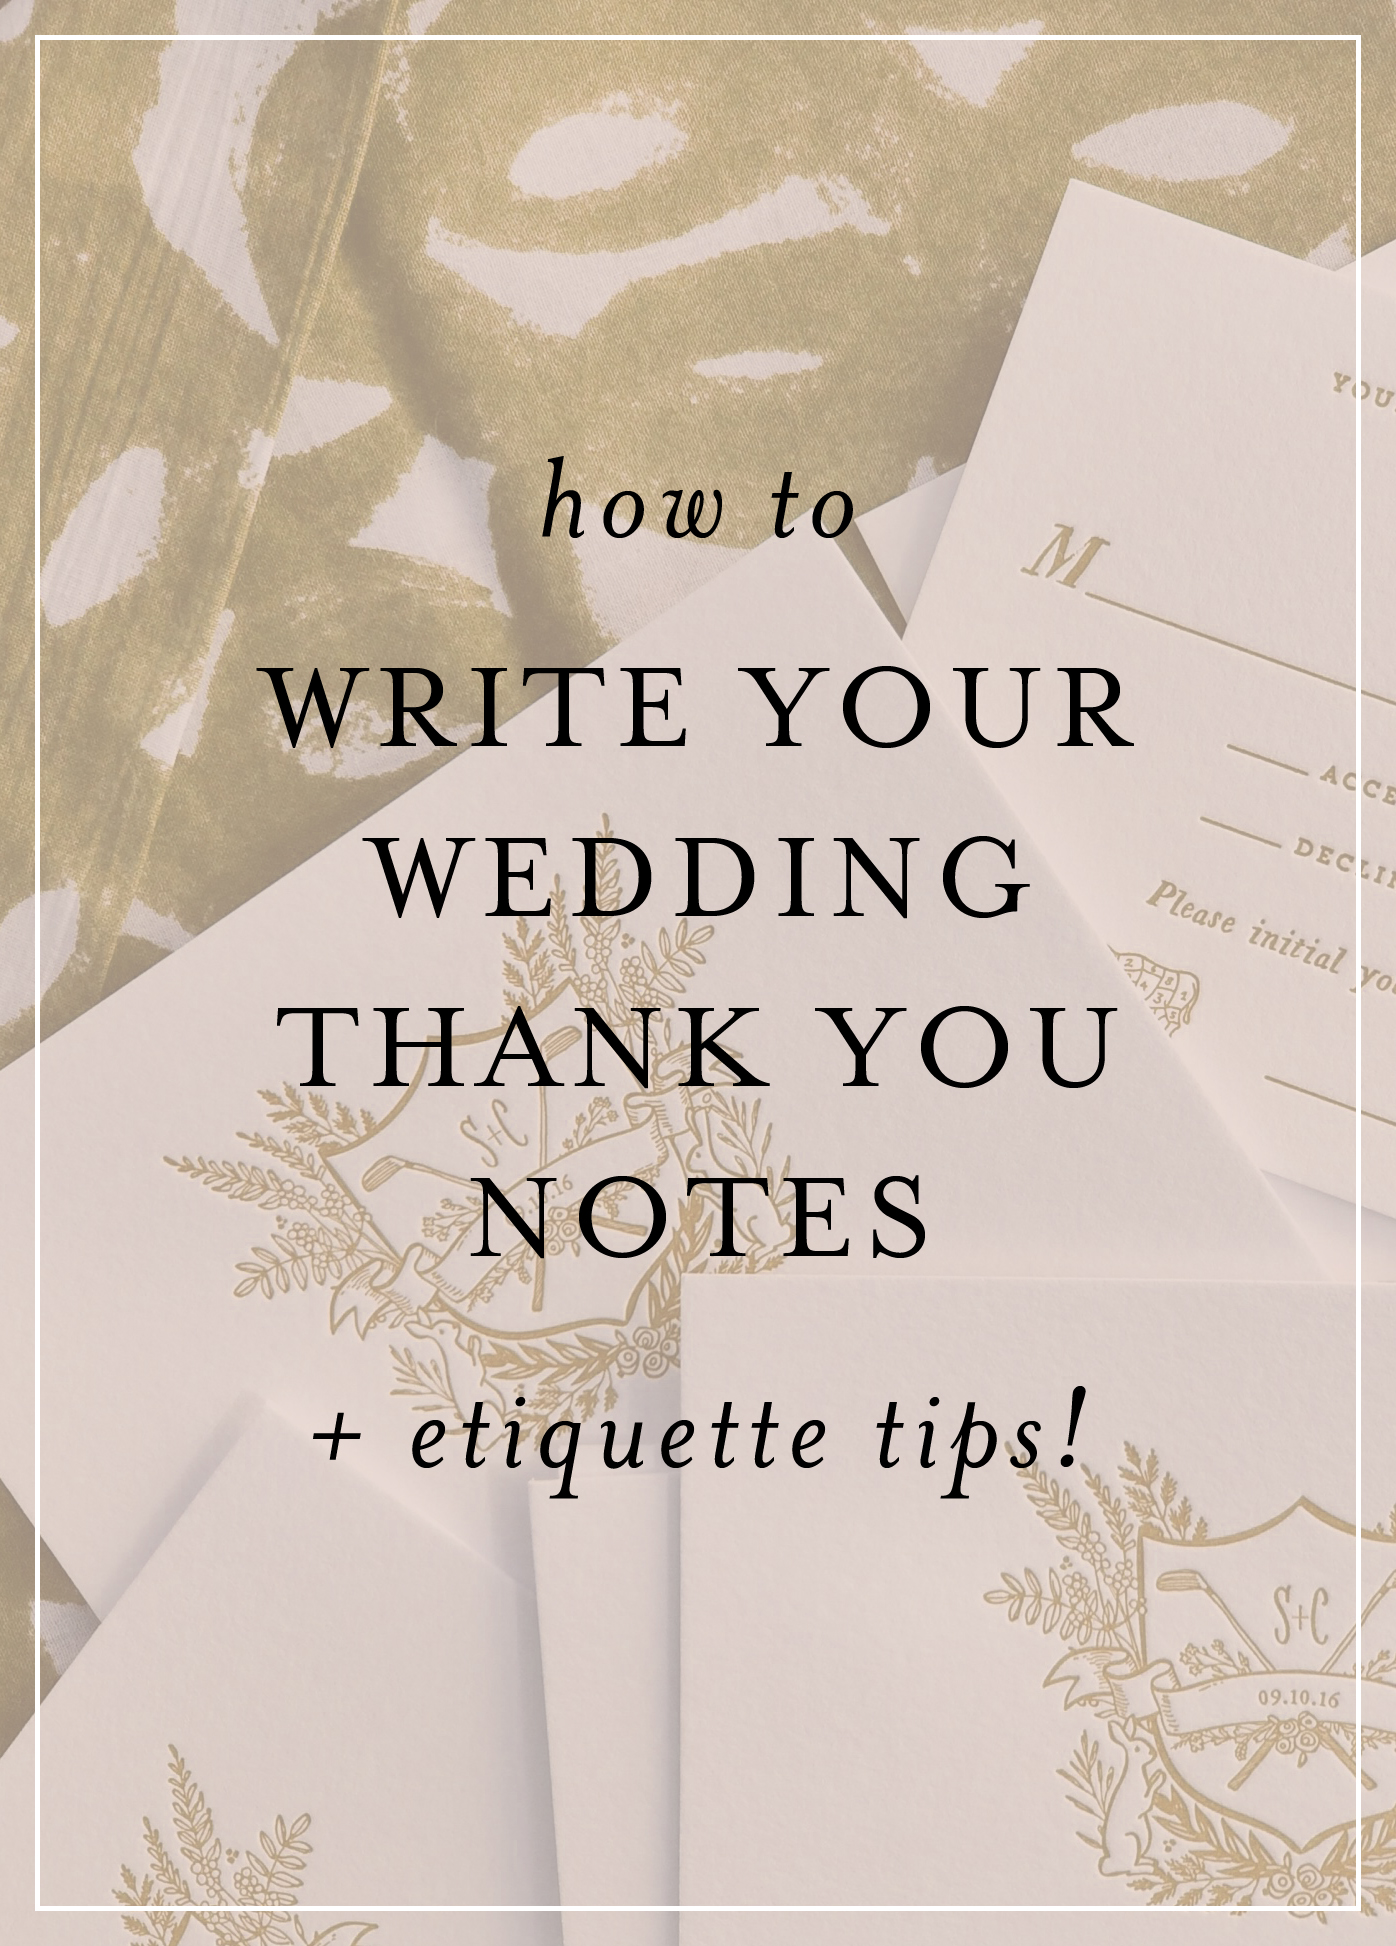 How To Write Your Wedding Thank You Notes Hello Tenfold Wedding